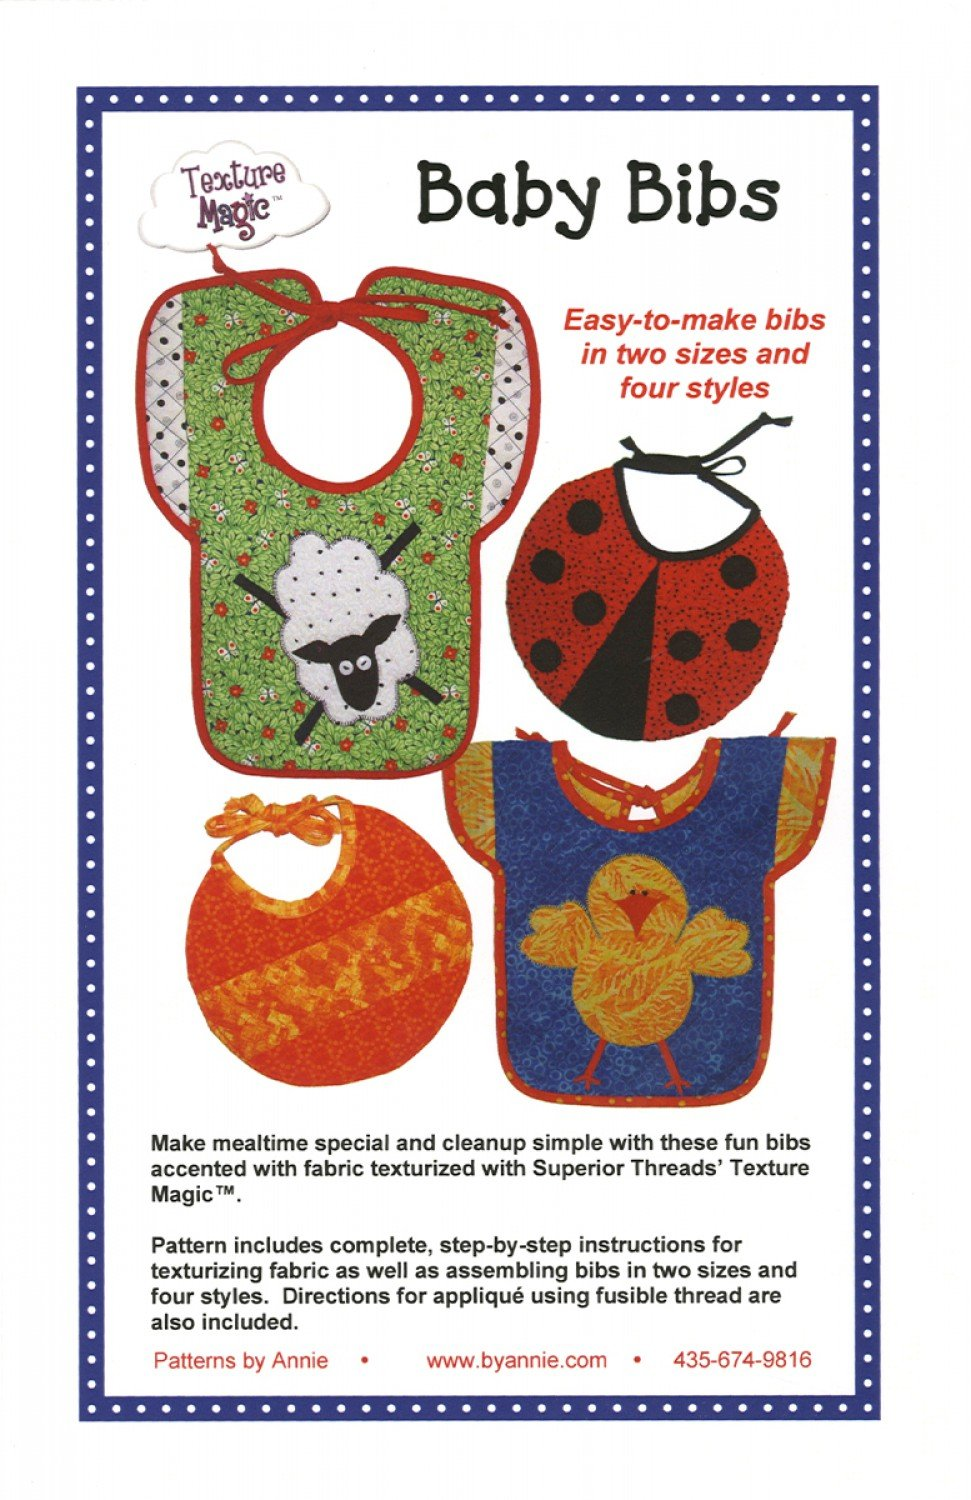 Baby Bib Patterns from Texture Magic by Patterns by Annie